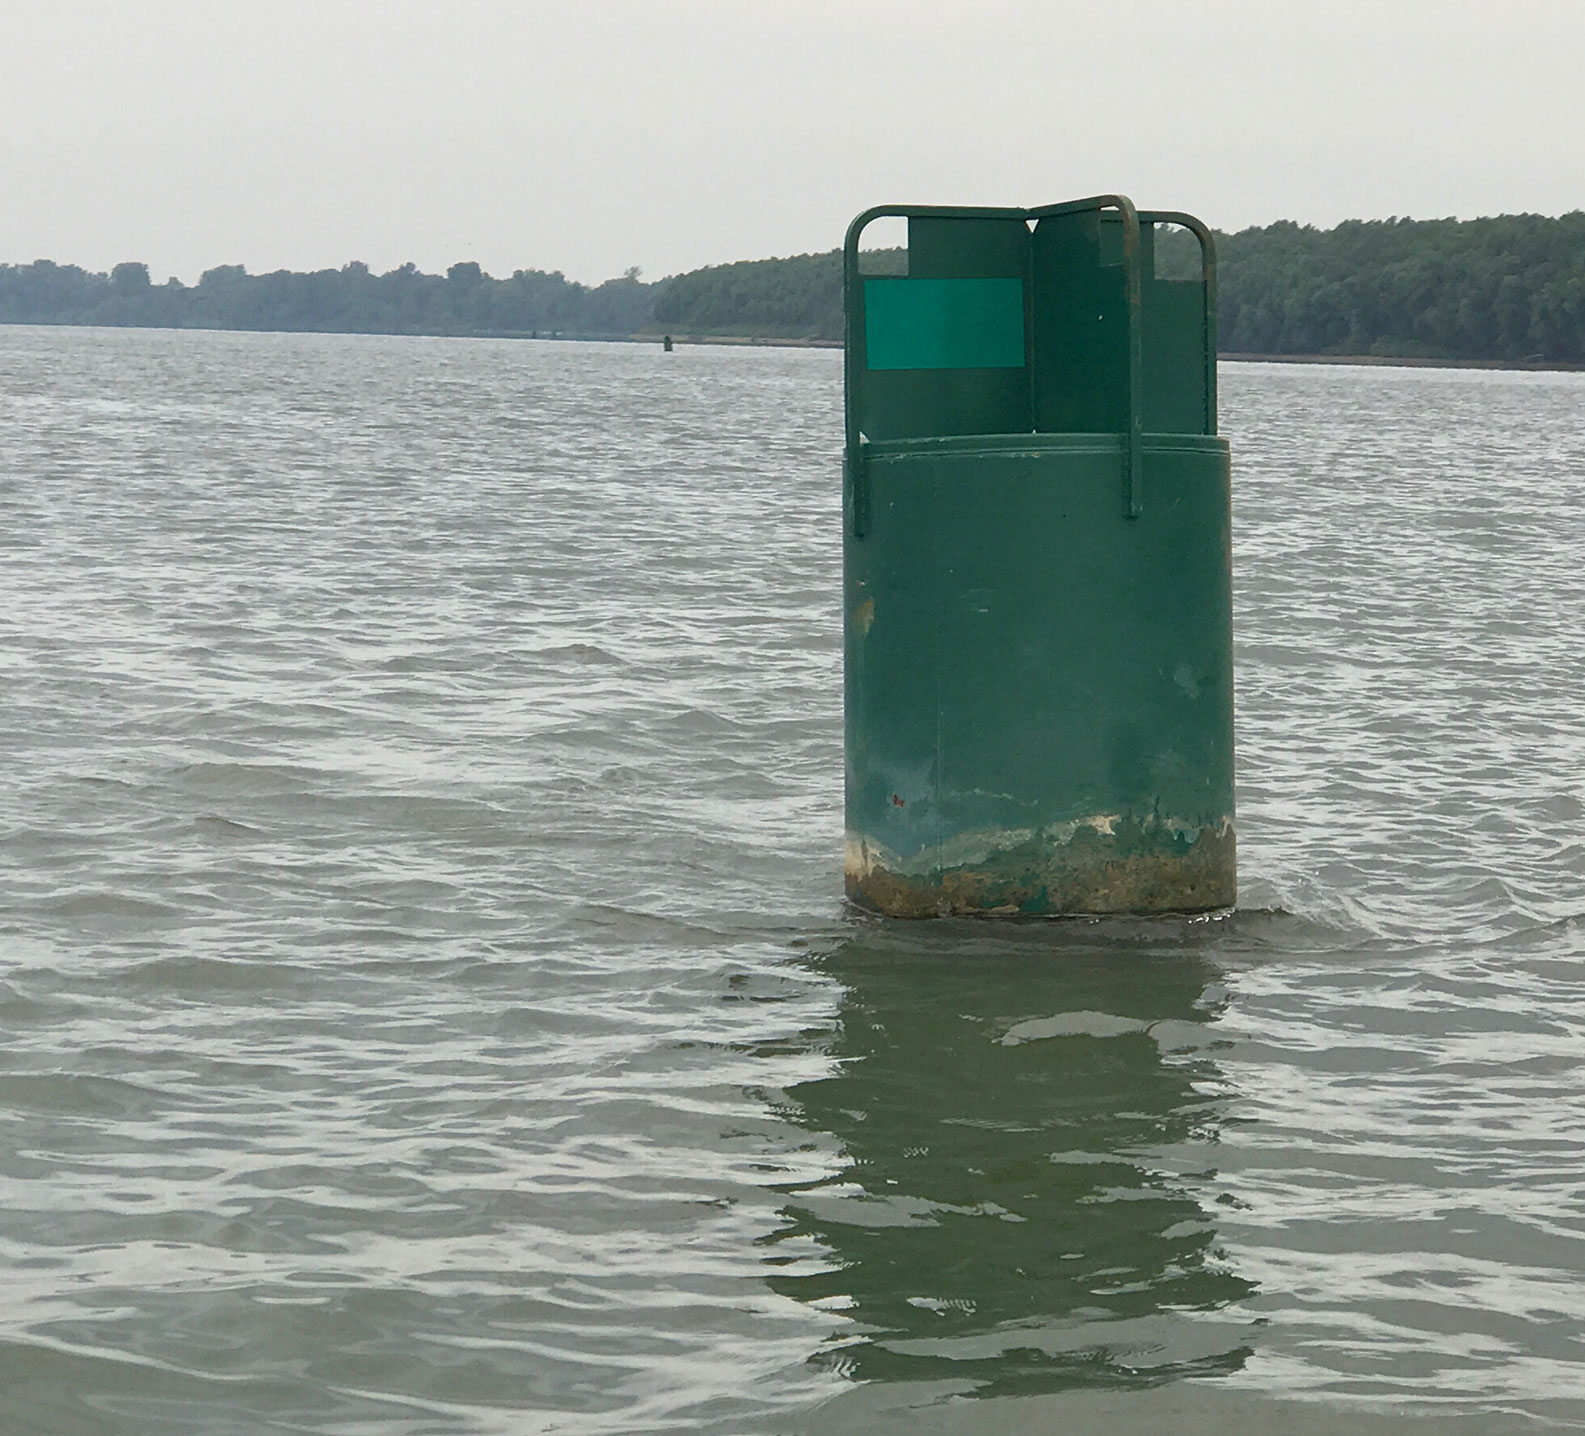 Green channel marker on the Ohio River